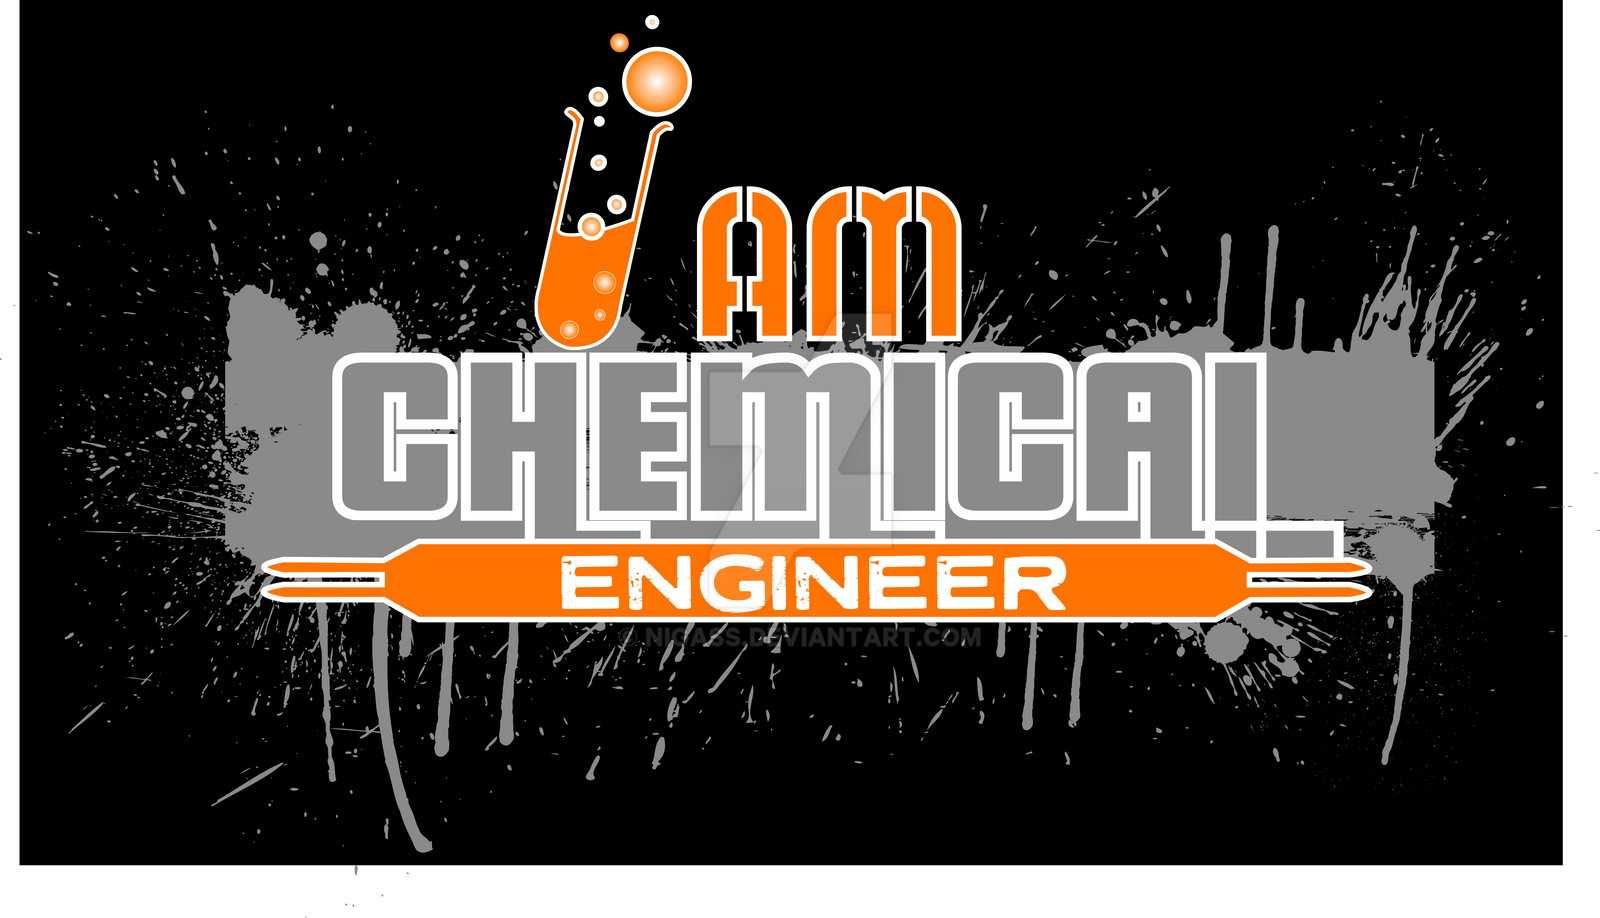 chemical engineer Learn all you need to know about the chemical engineer salary in 2017, from the entry level chemical engineer salary to the working hours, job outlook, etc.